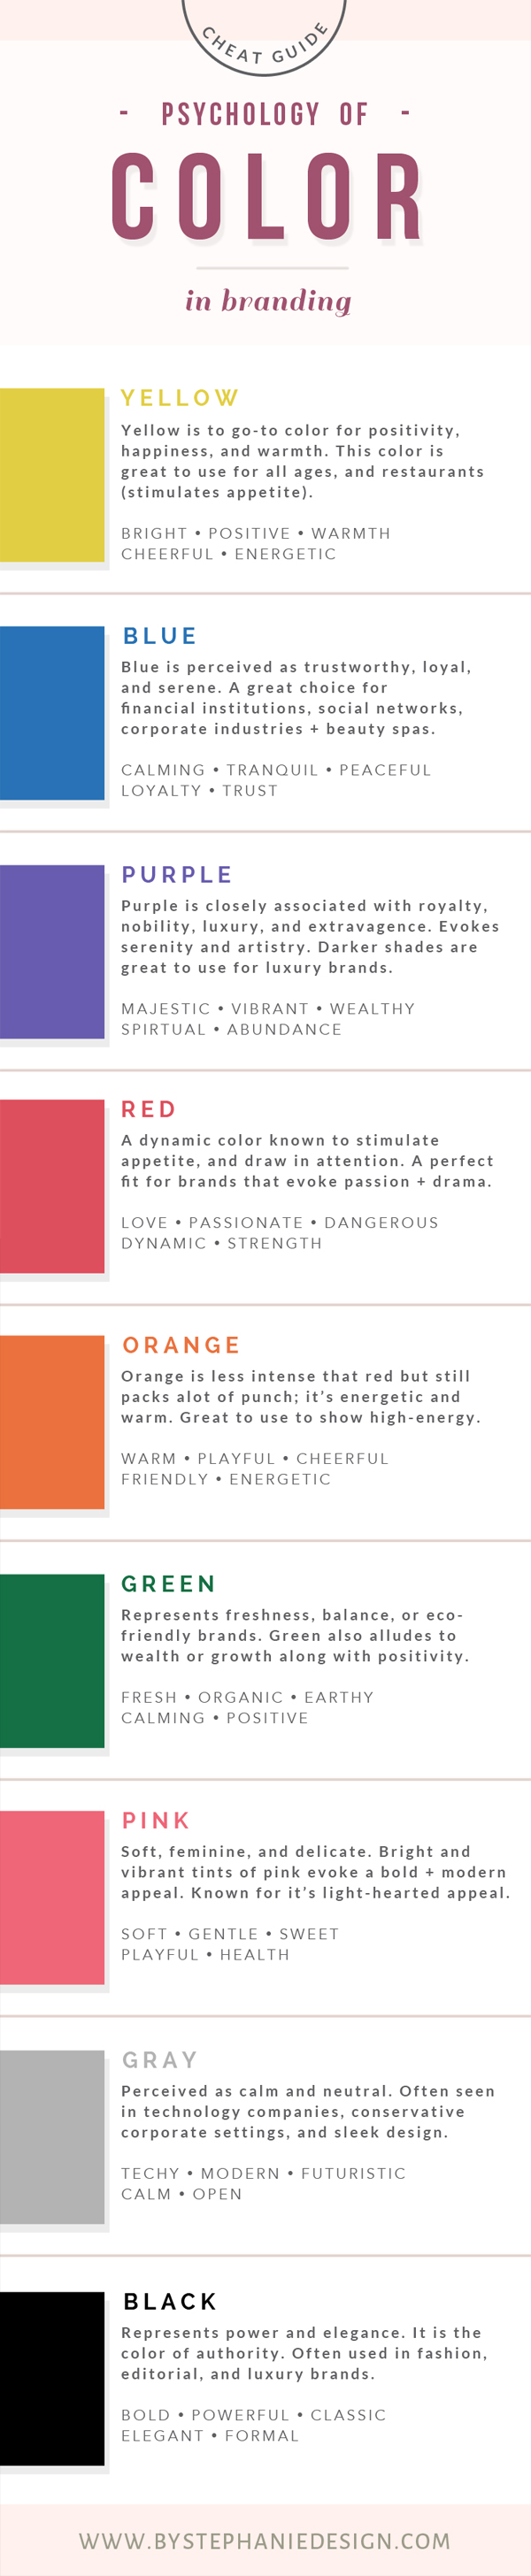 how to chose the perfect  color palette for your brand - by stephanie design